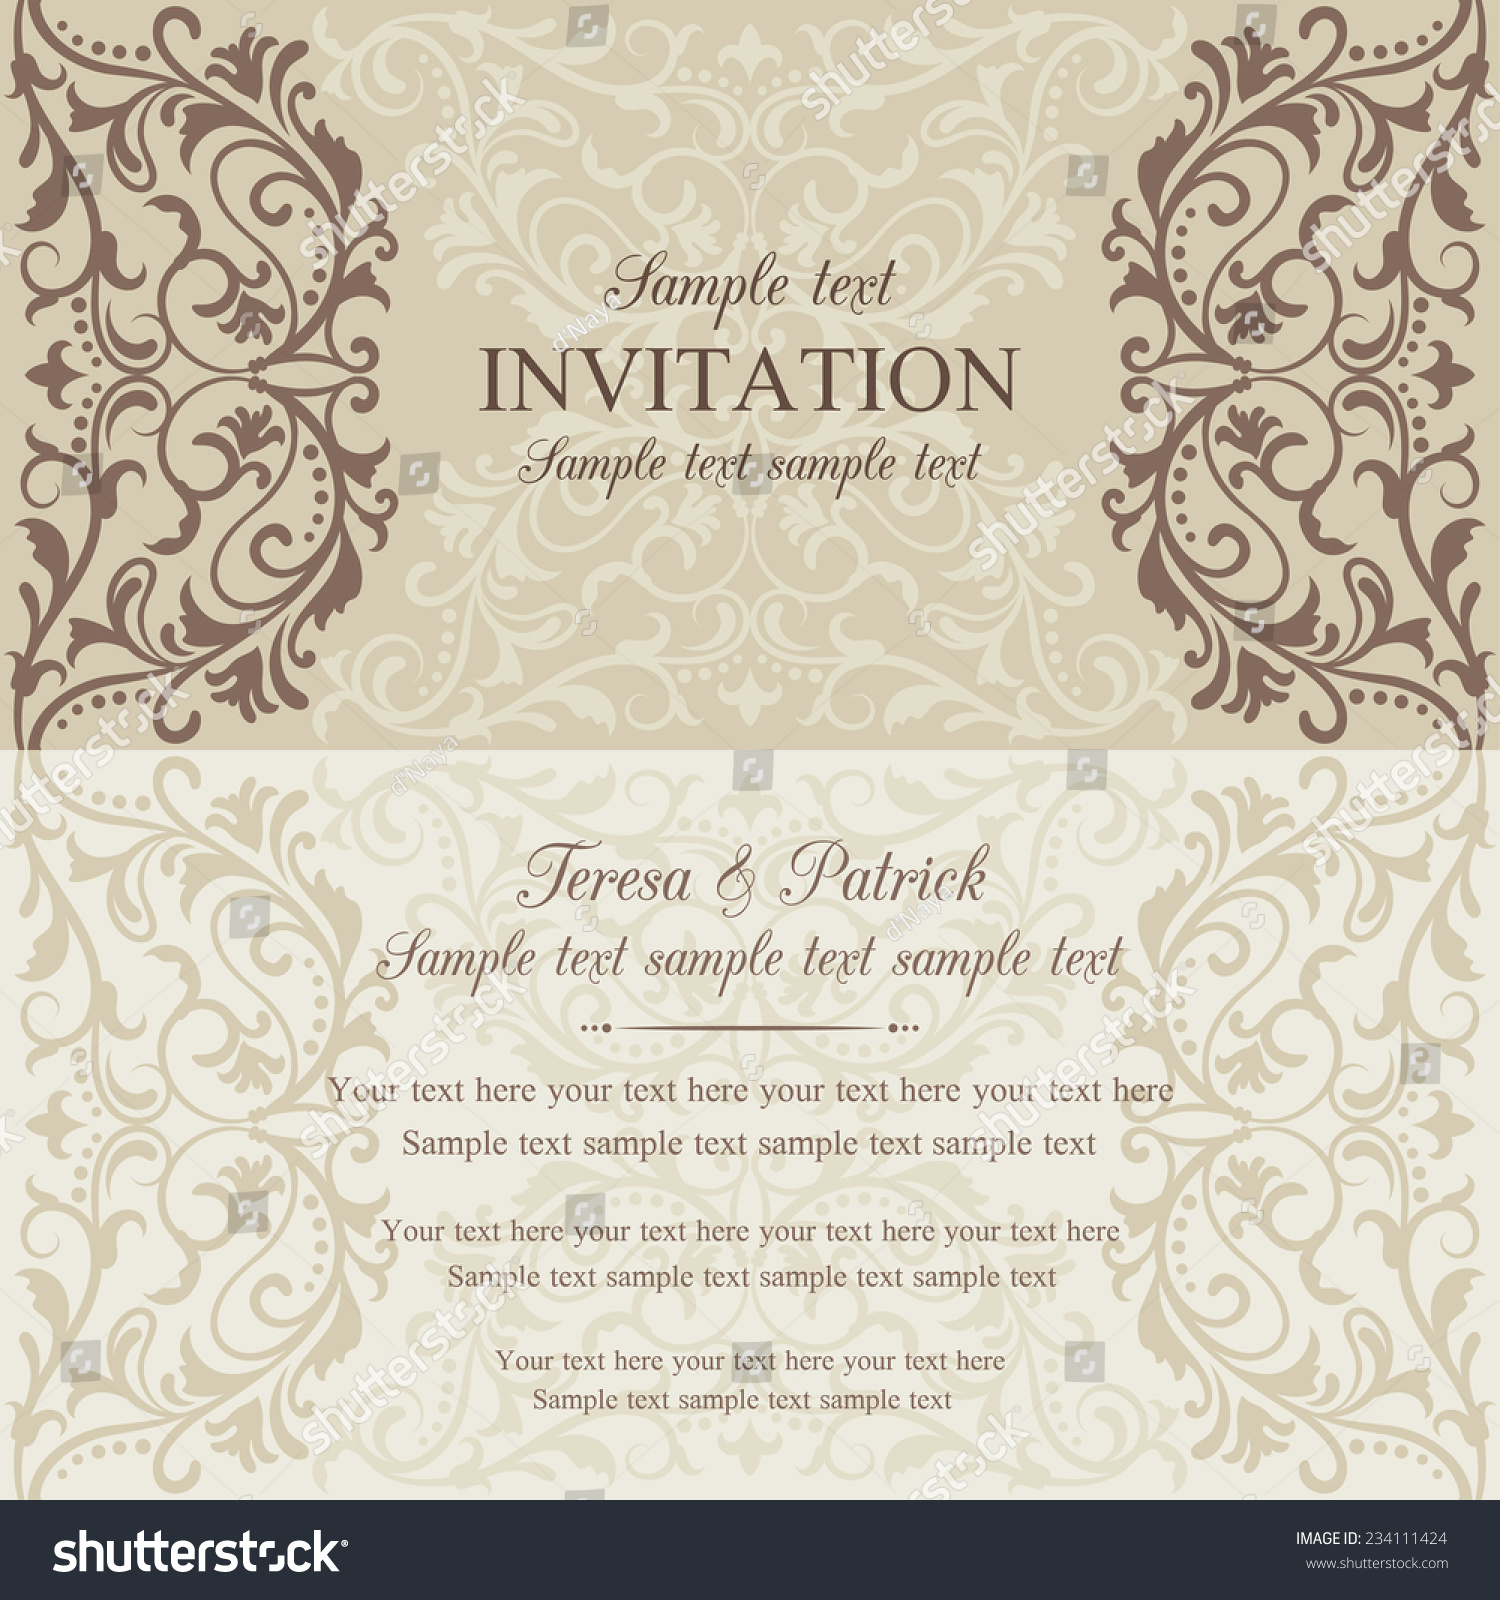 Antique Baroque Invitation Card Oldfashioned Style Stock Vector ...